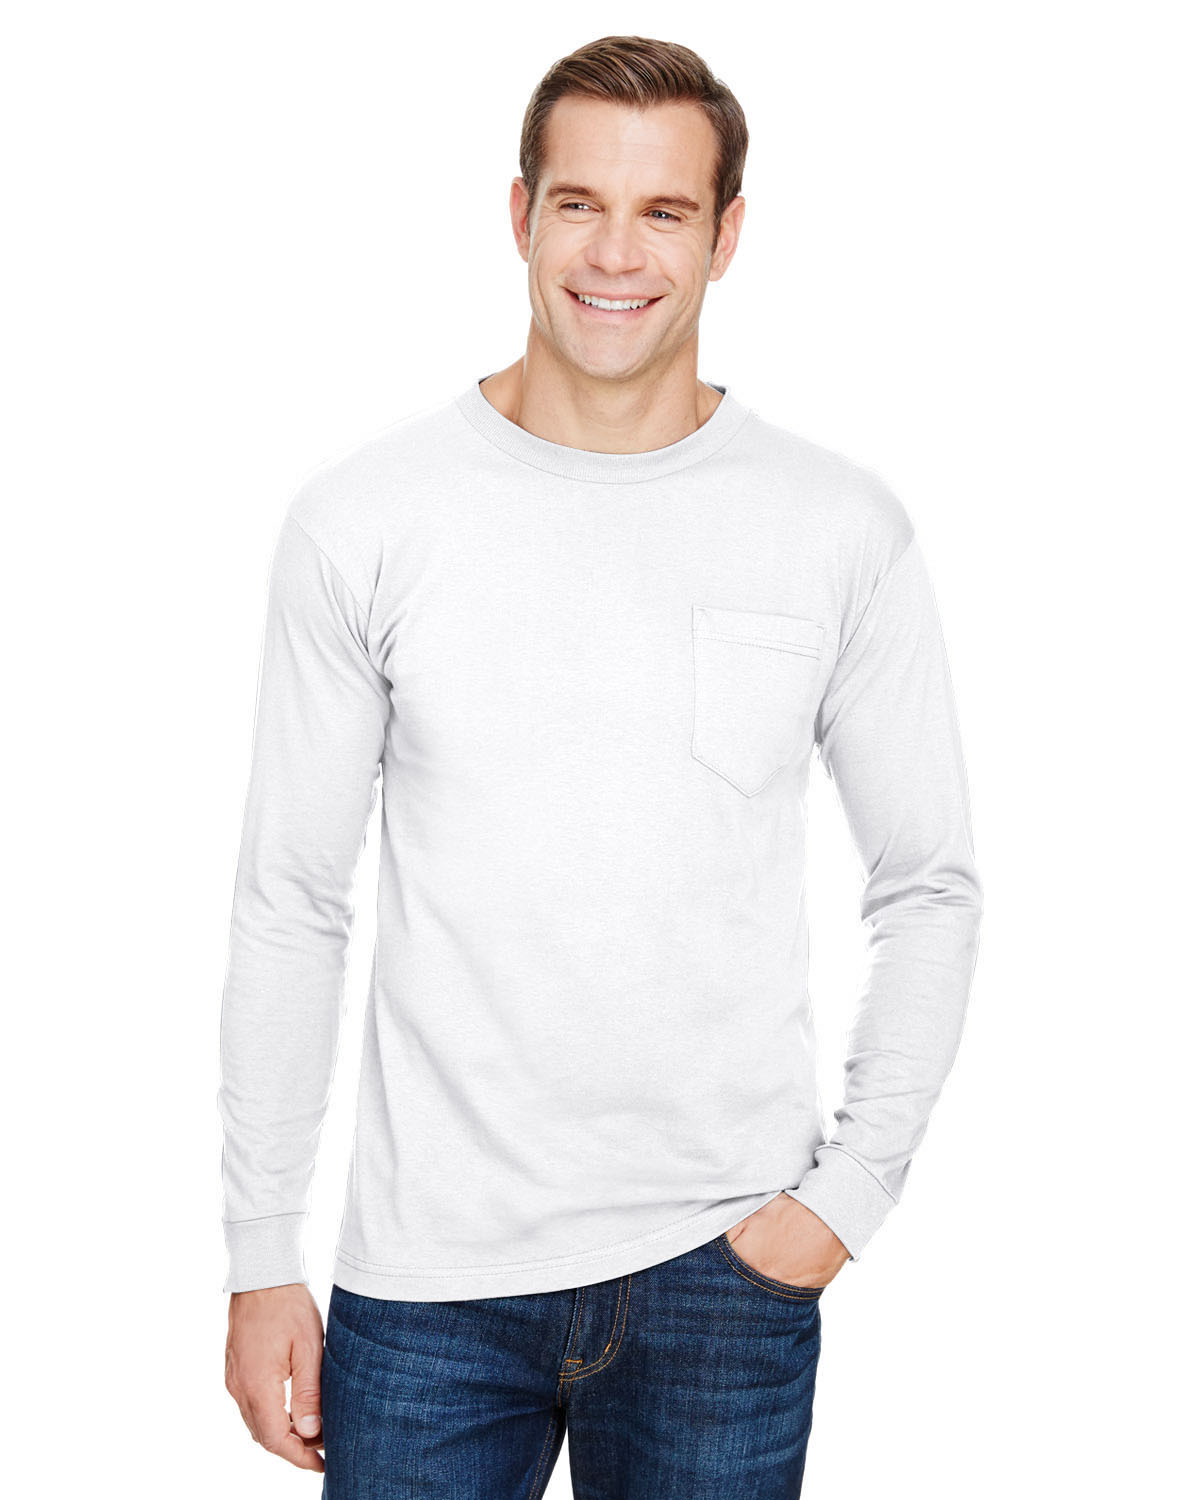 Unisex Union-Made Long-Sleeve Pocket Crew T-Shirt